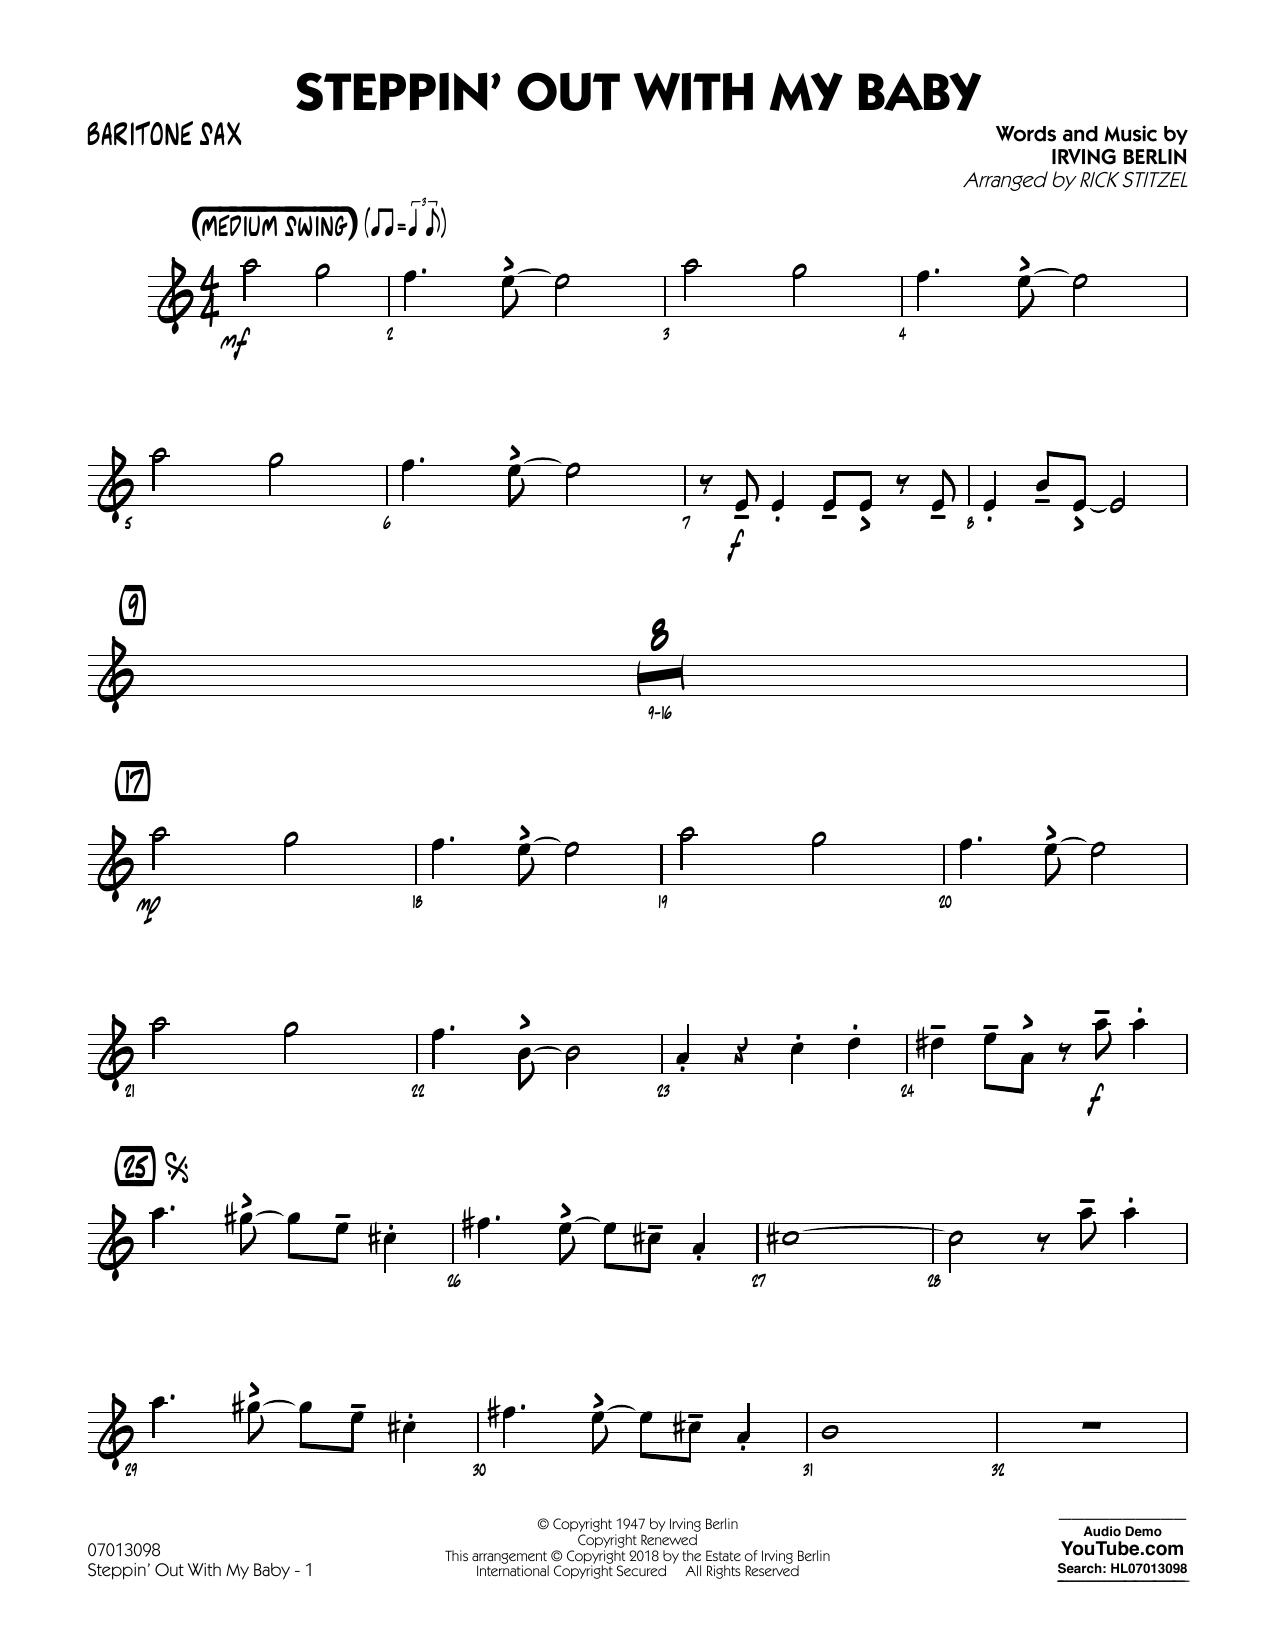 Rick Stitzel Steppin' Out with My Baby - Baritone Sax sheet music notes printable PDF score